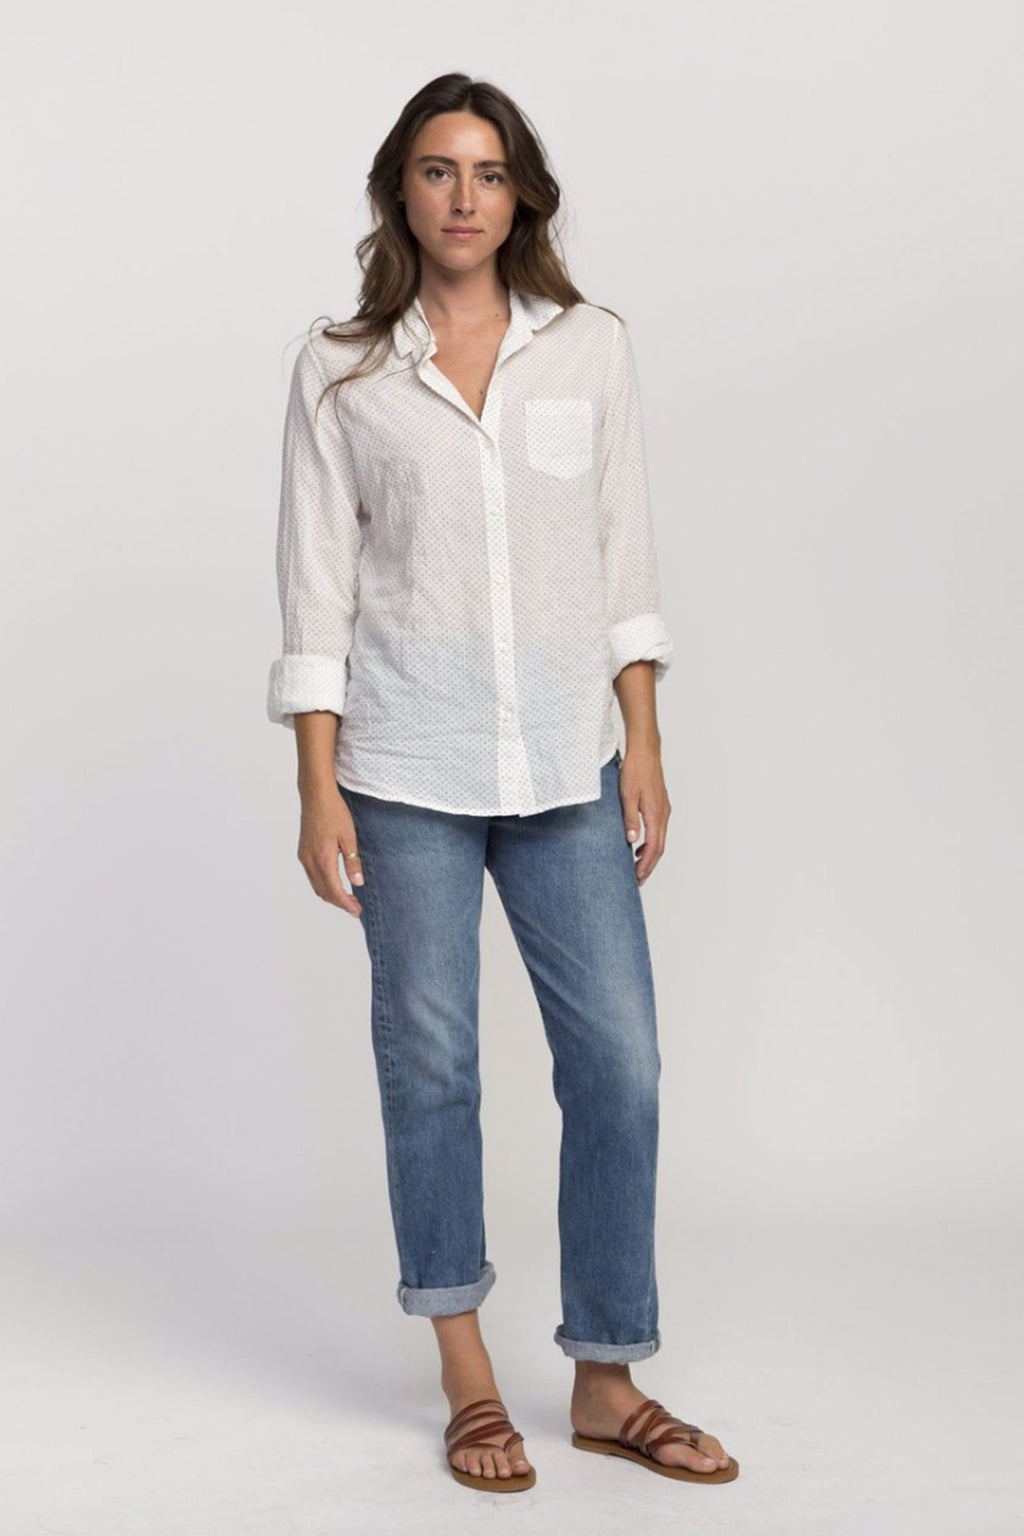 Trovato Grace Poplin Classic Shirt in Micro Dot